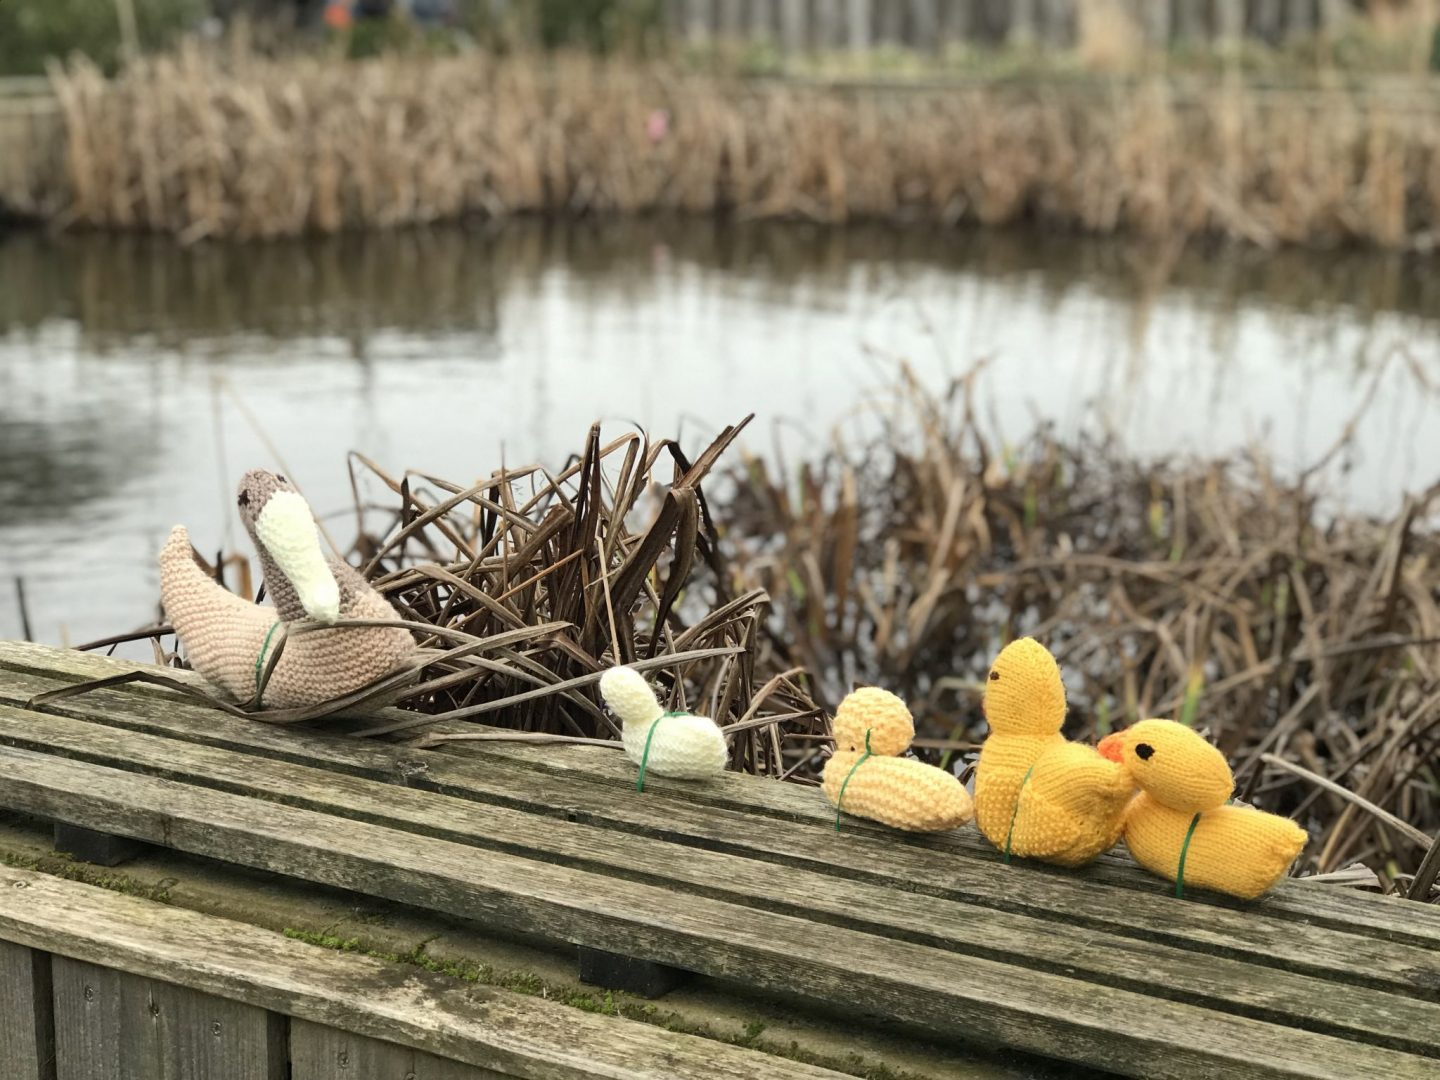 The Yarn Bombers have struck at RSPB Saltholme